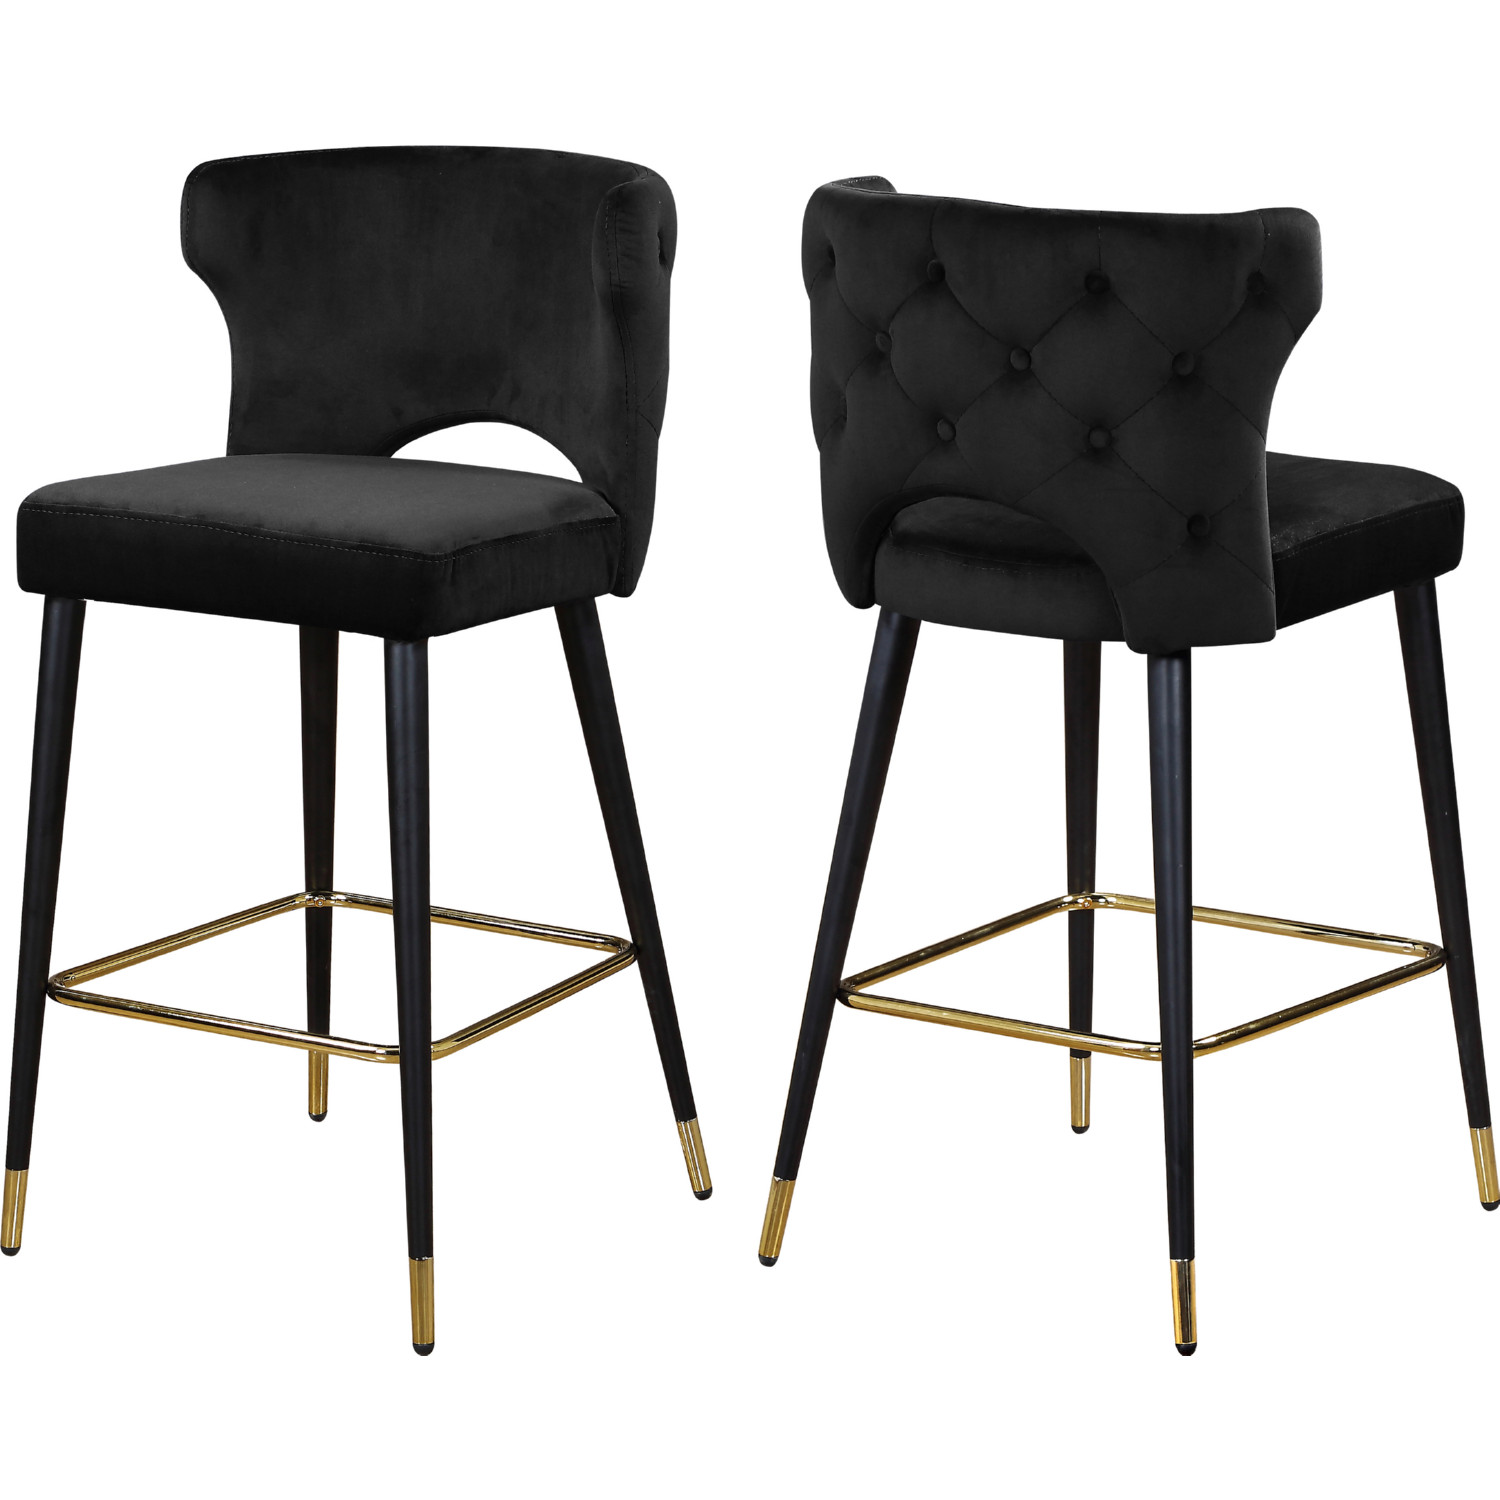 Terrific Kelly Bar Or Counter Stool In Black Velvet W Tufted Back Set Of 2 By Meridian Furniture Lamtechconsult Wood Chair Design Ideas Lamtechconsultcom